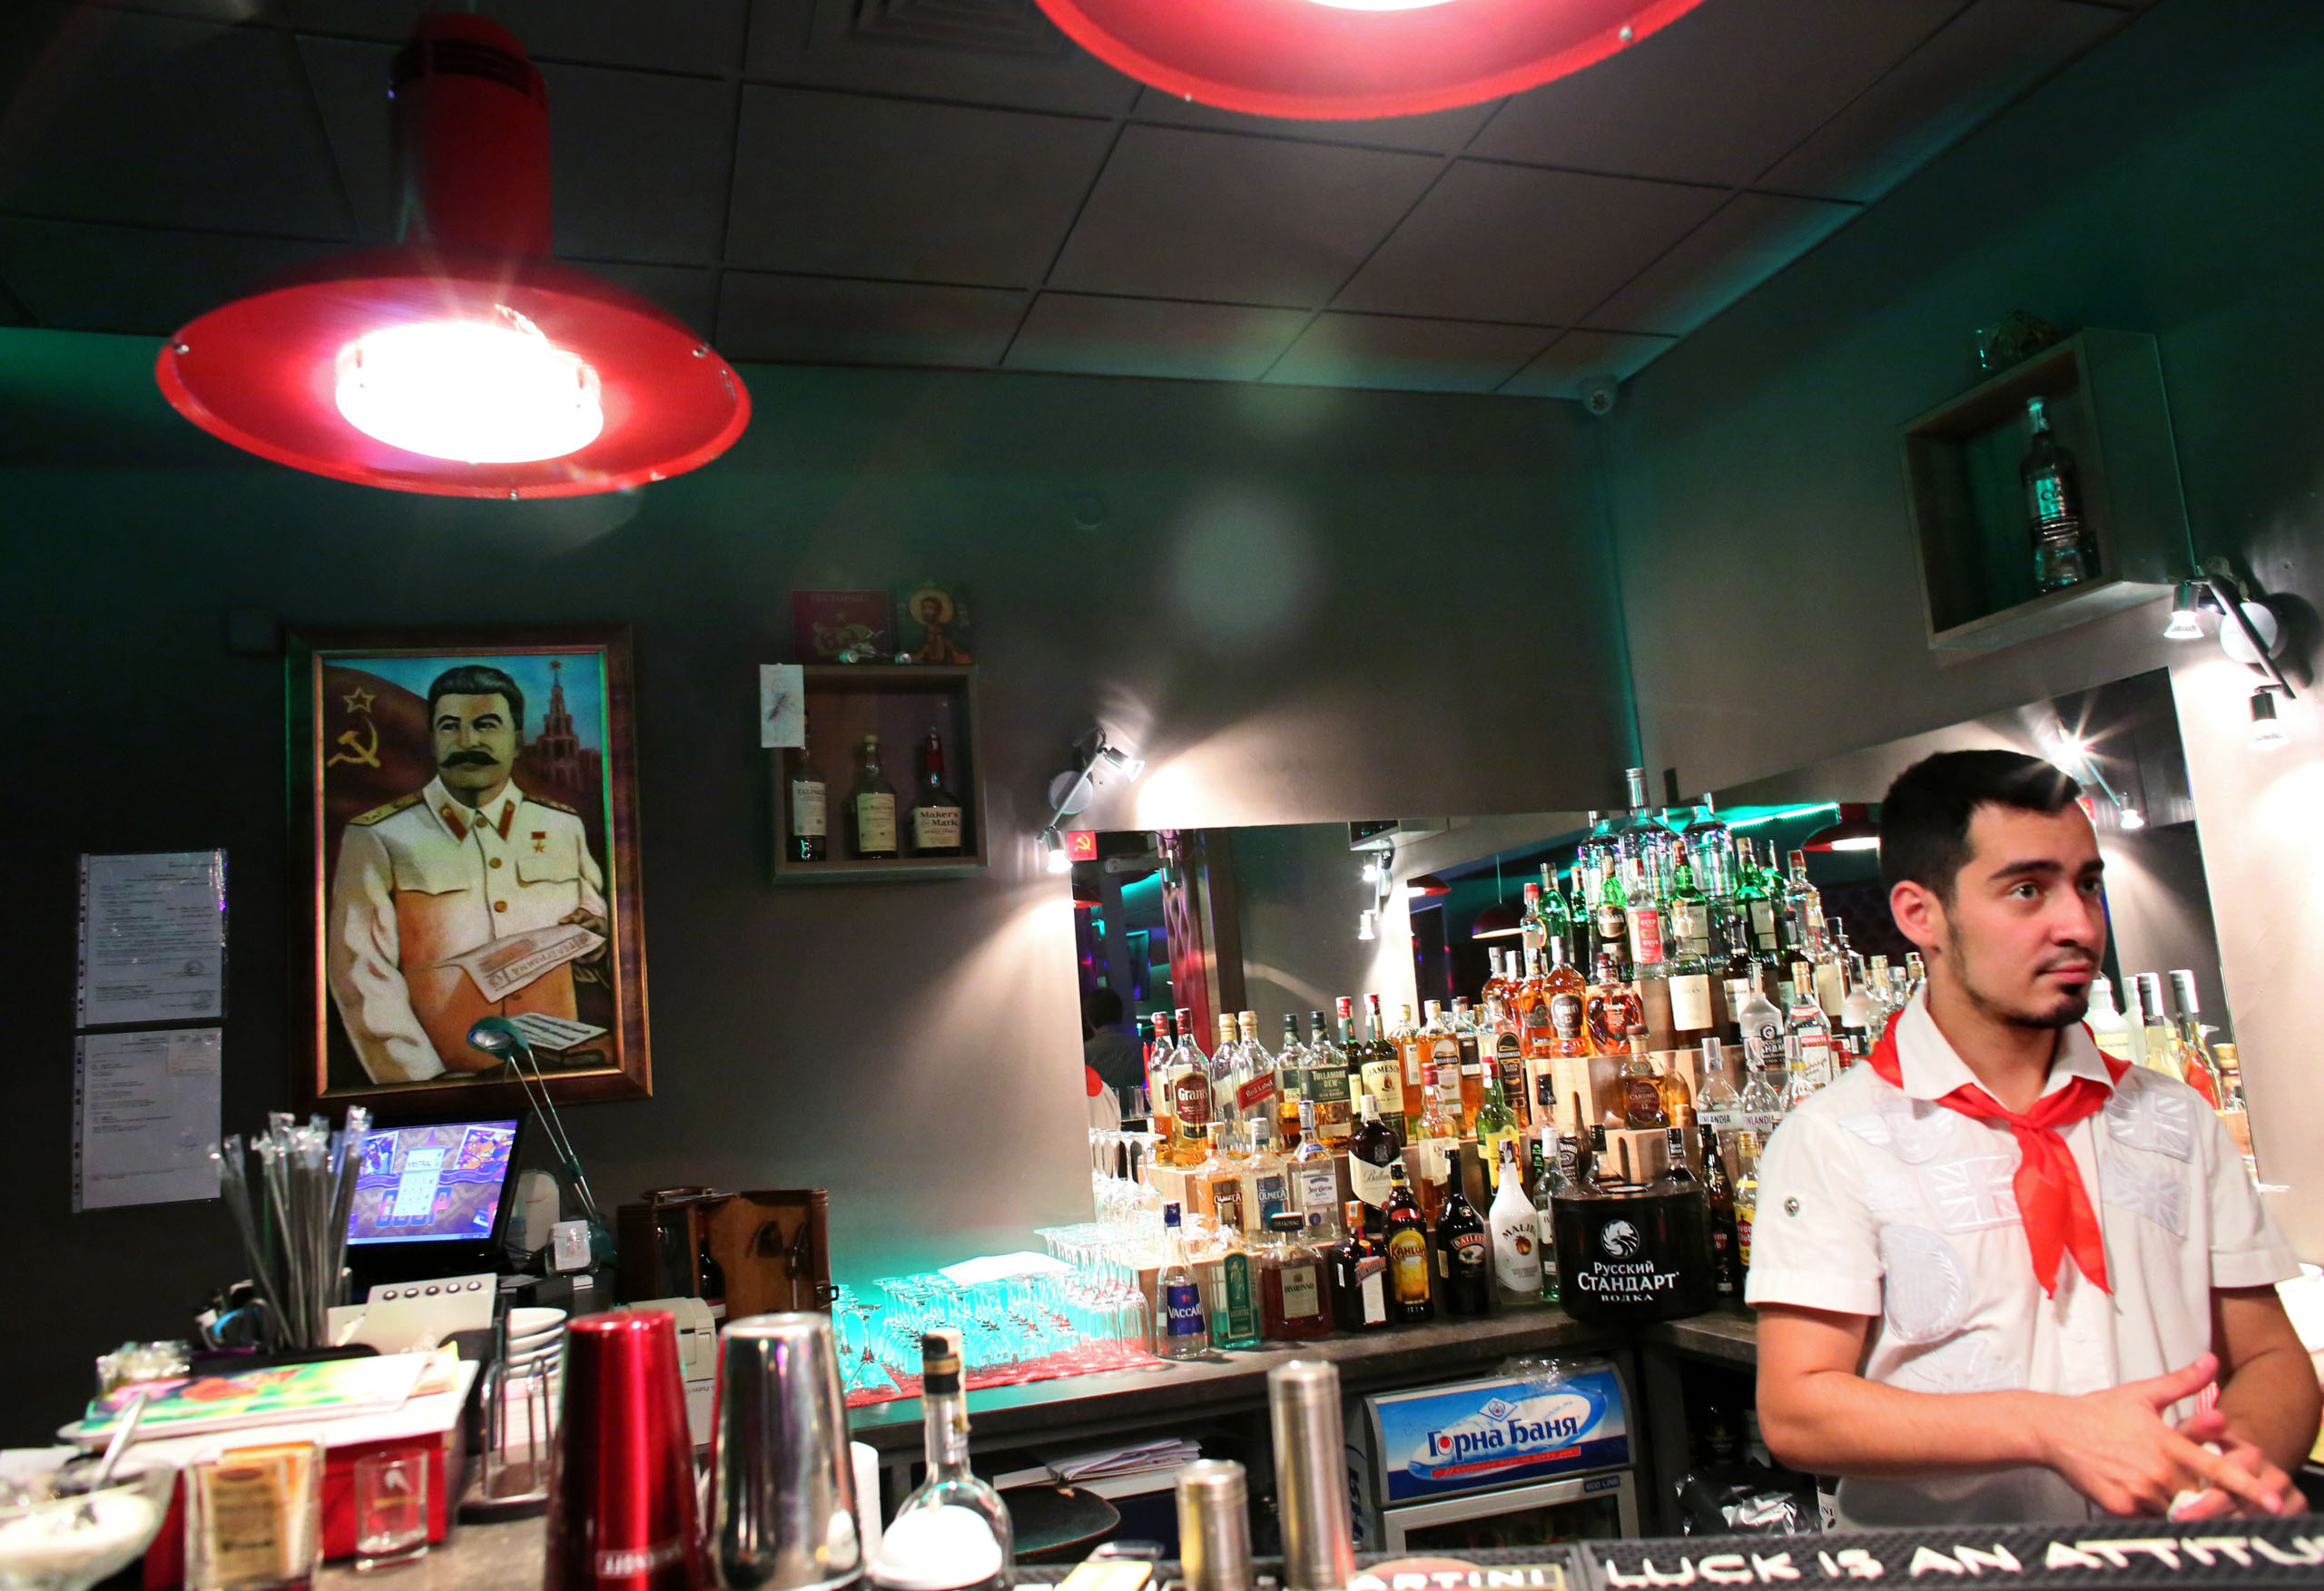 Kristiyan Stamatov serves drinks in front of a portrait of Joseph Stalin, at SSSR, a USSR nostalgia restaurant and bar in Sofia, Oct. 4, 2014.